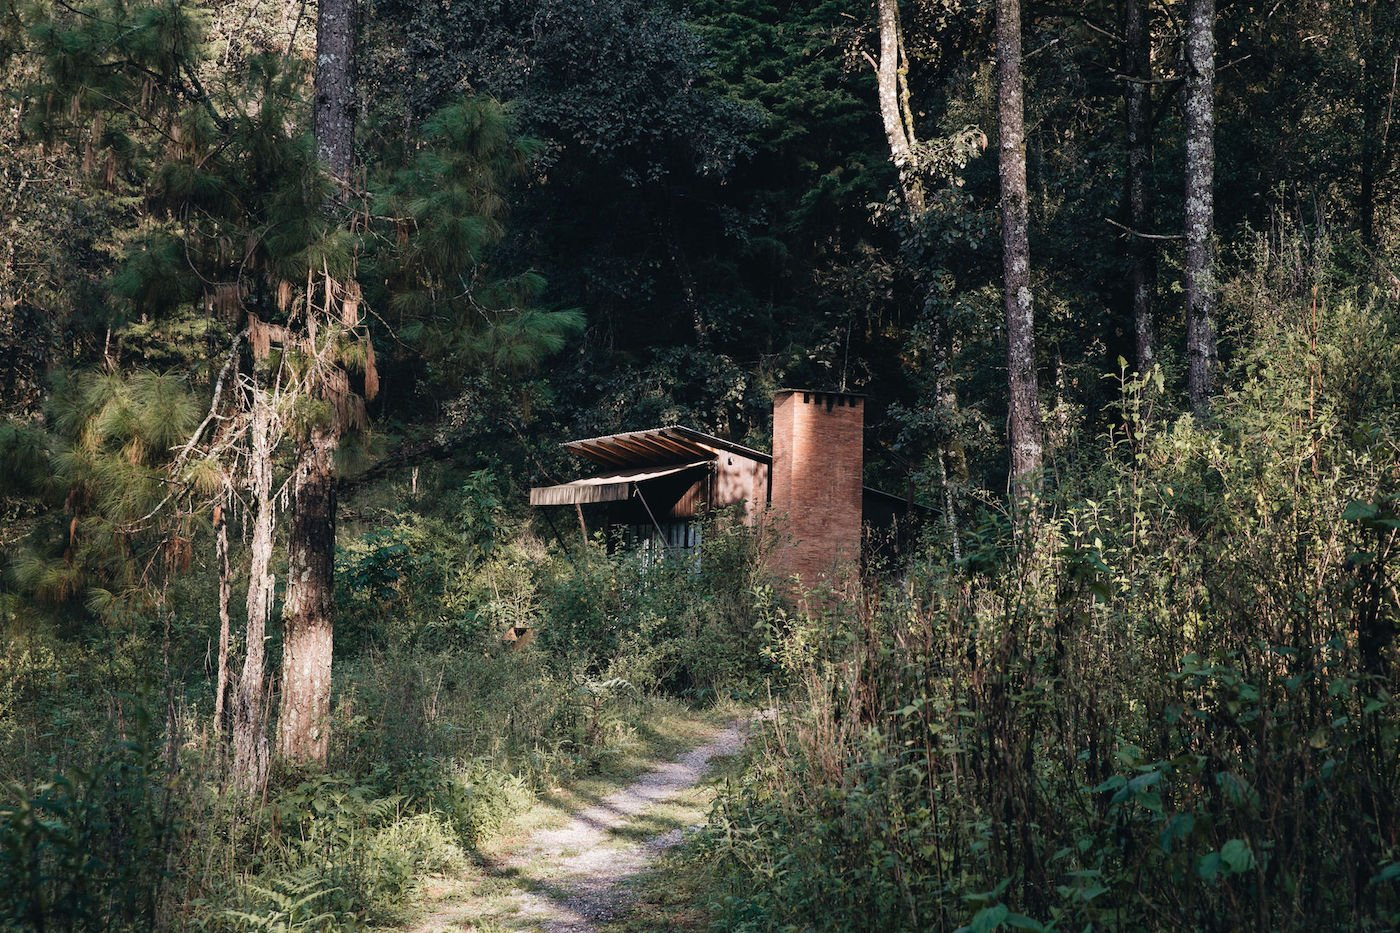 View through bush towards off-grid timber cabin